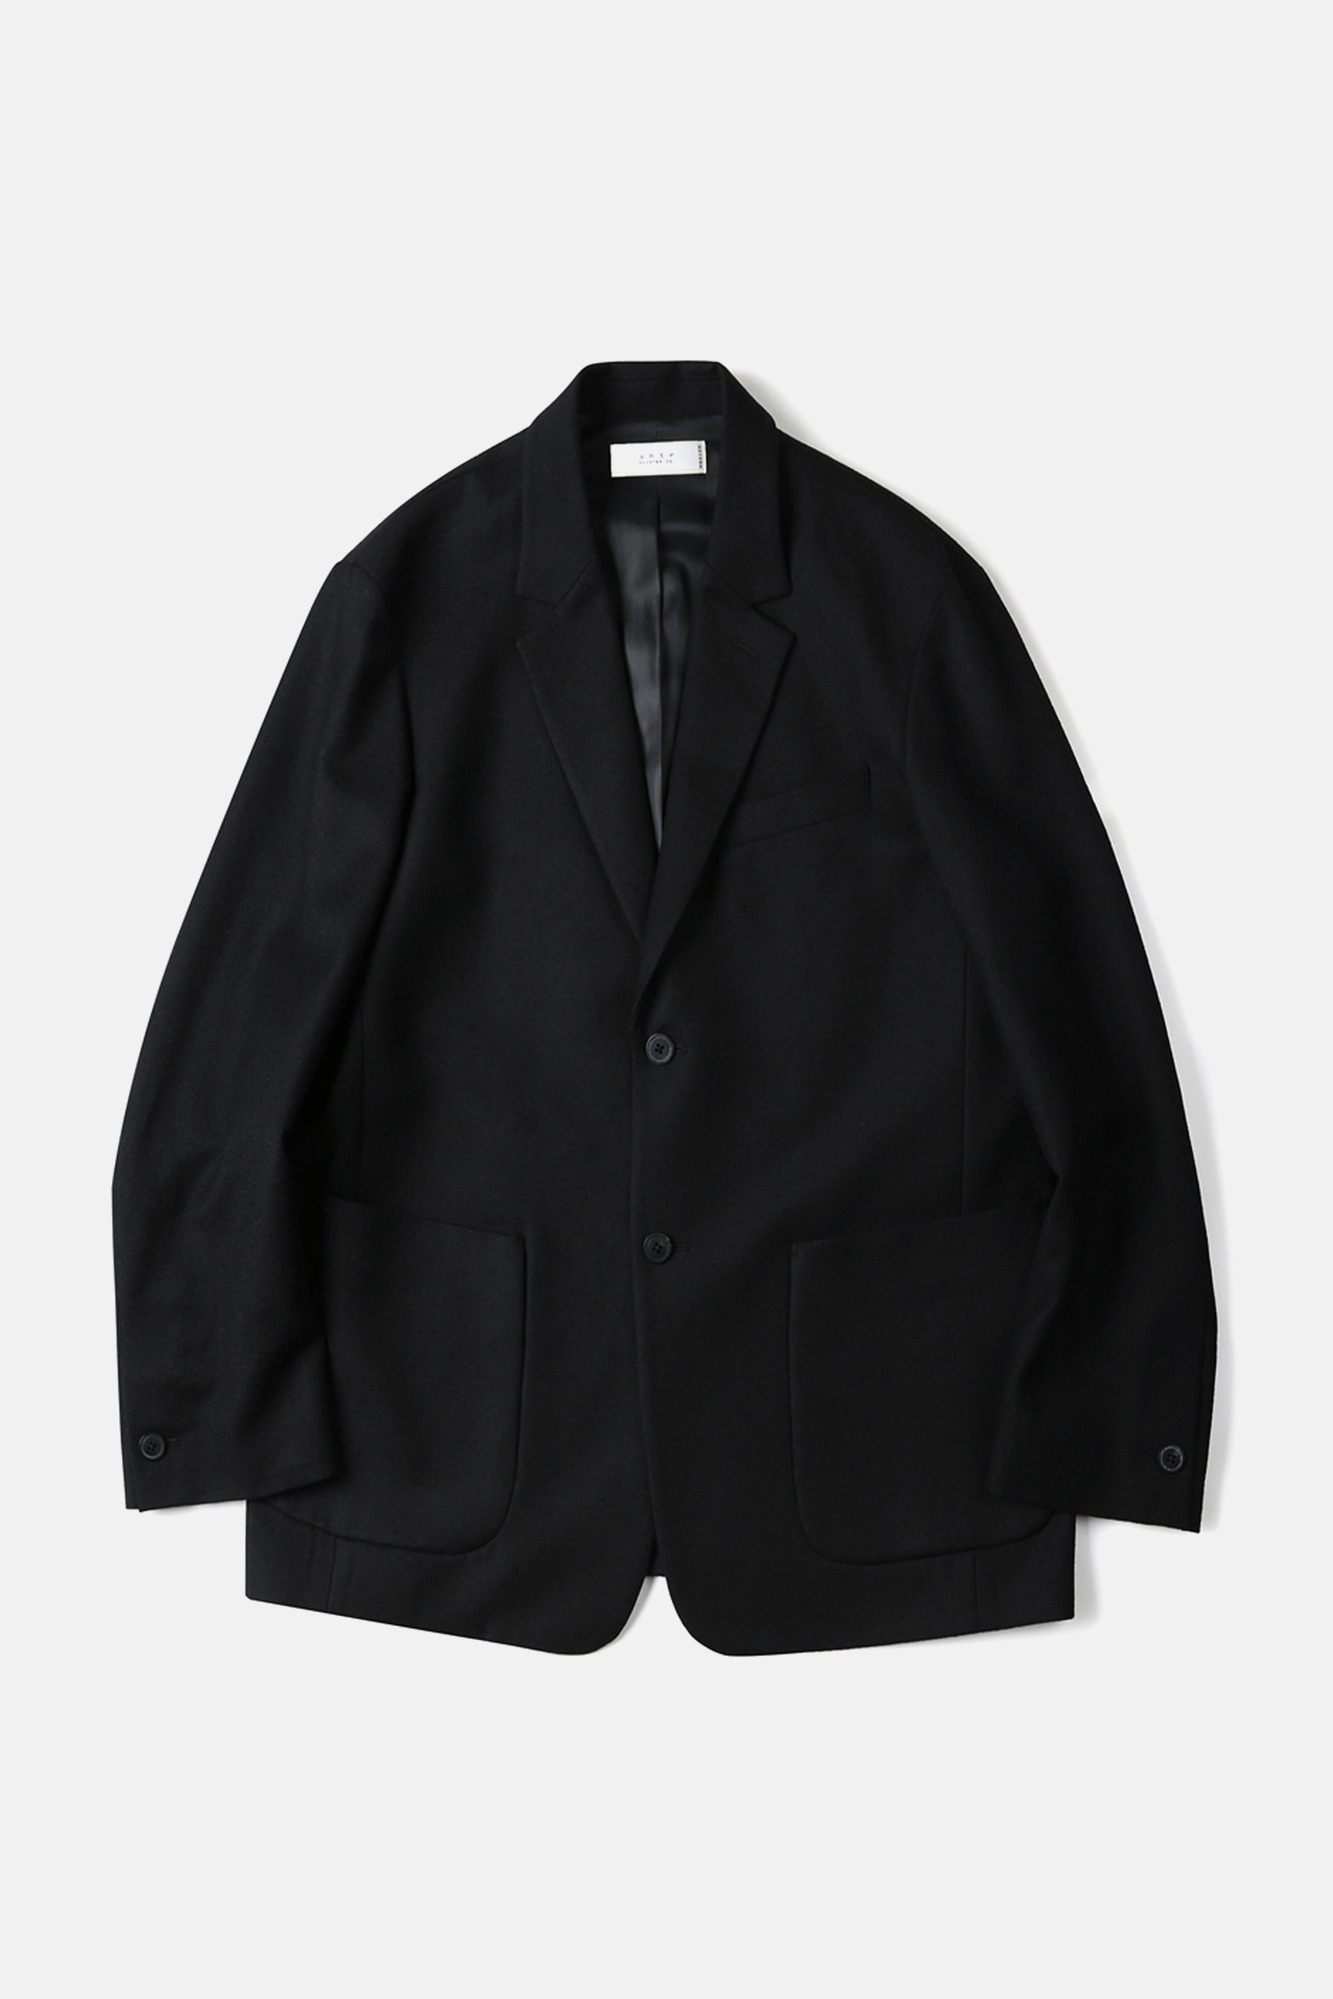 "SHIRTER Pure Wool Jacket ""Black"""